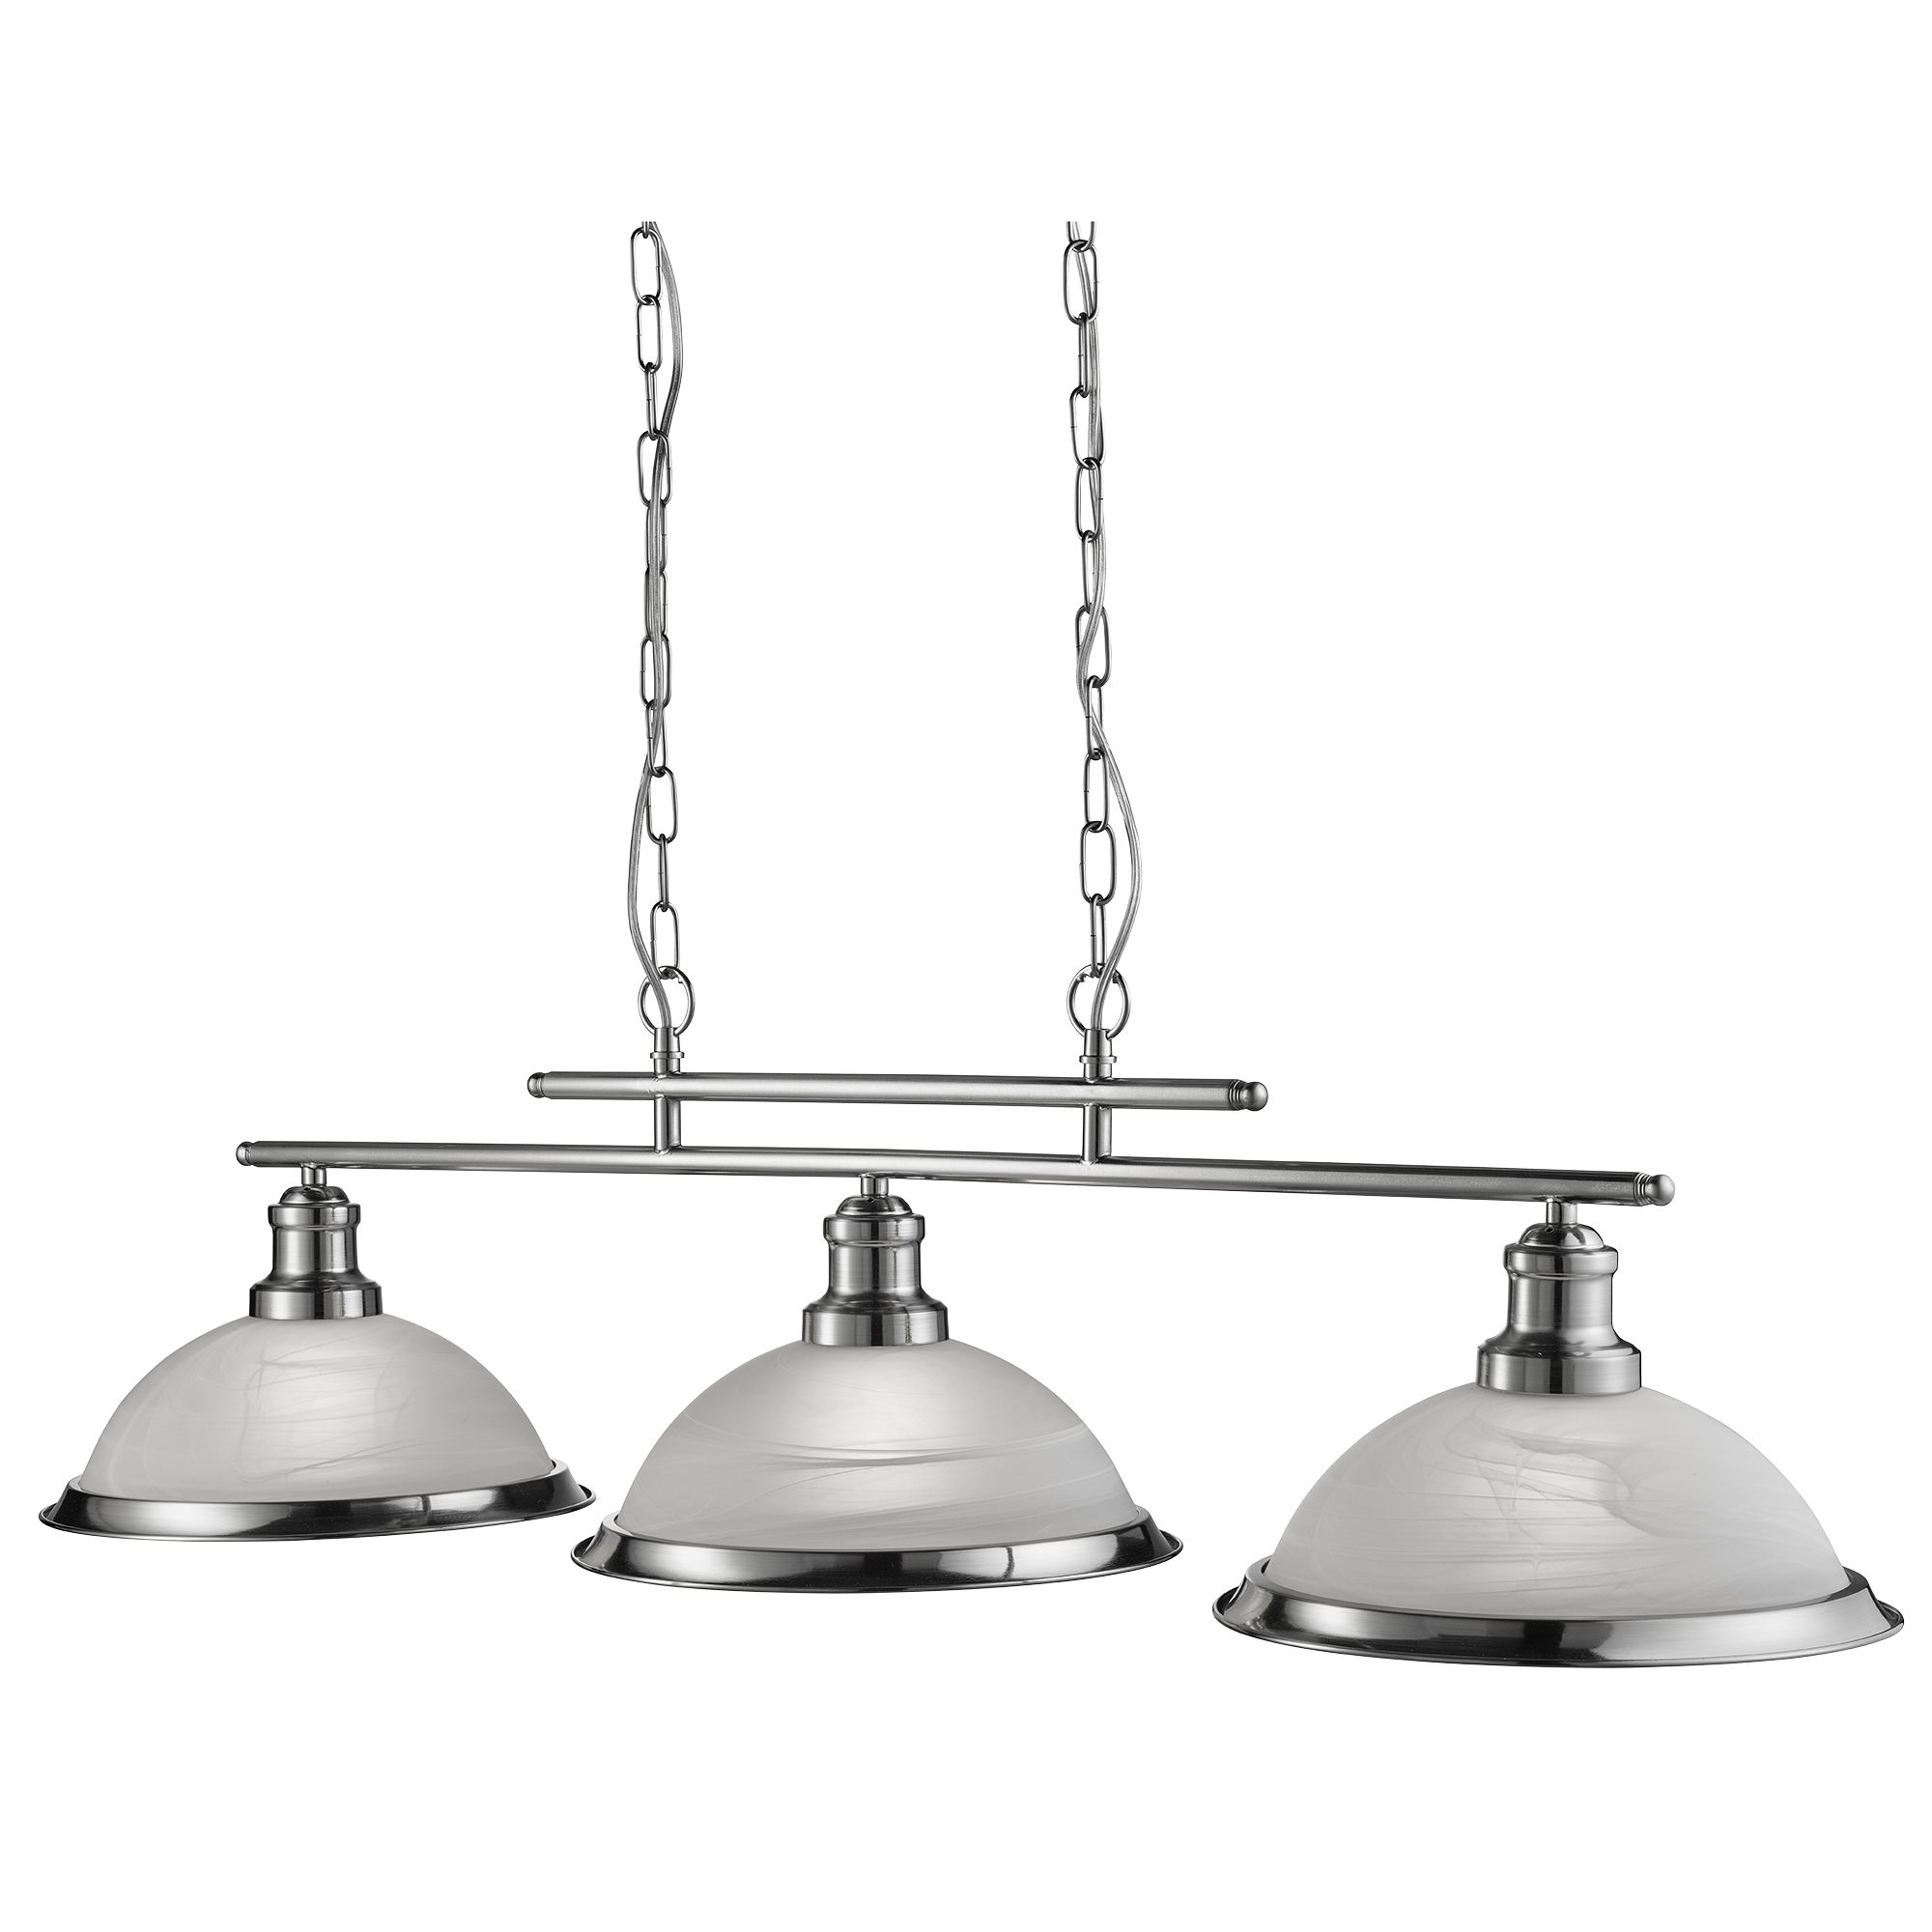 Bistro Satin Silver 3 Light Ceiling Bar Pendant With Marble Glass Shades